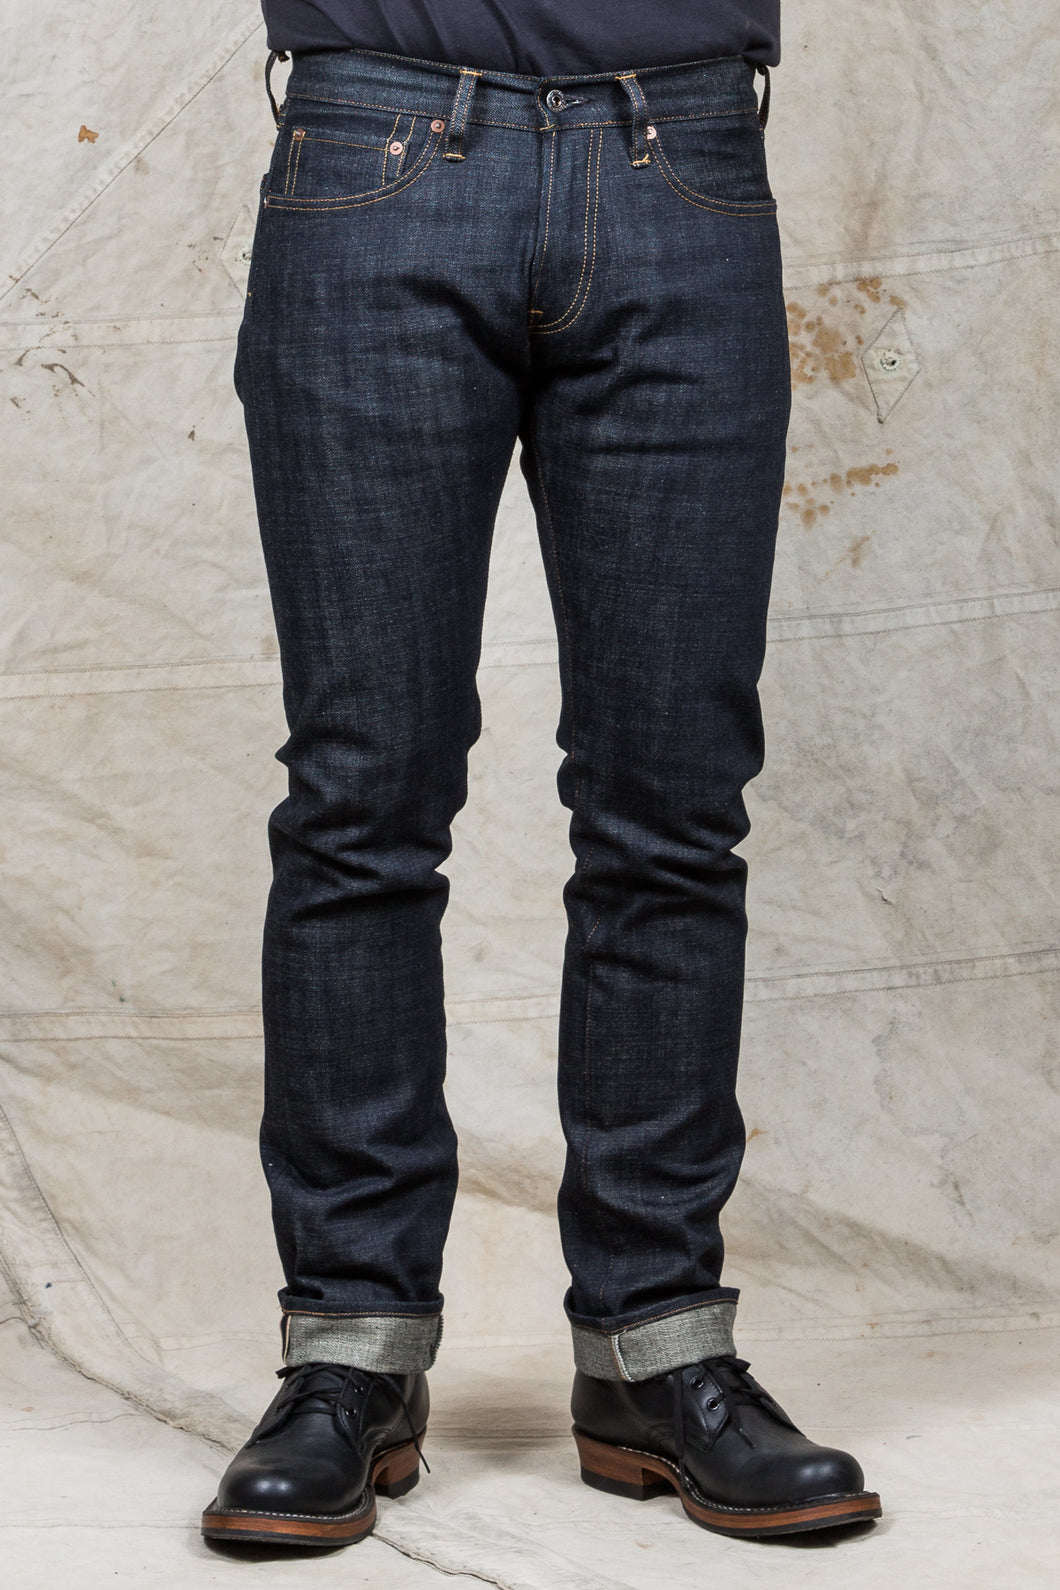 Indigofera Ray Jeans Winlock Selvedge Denim